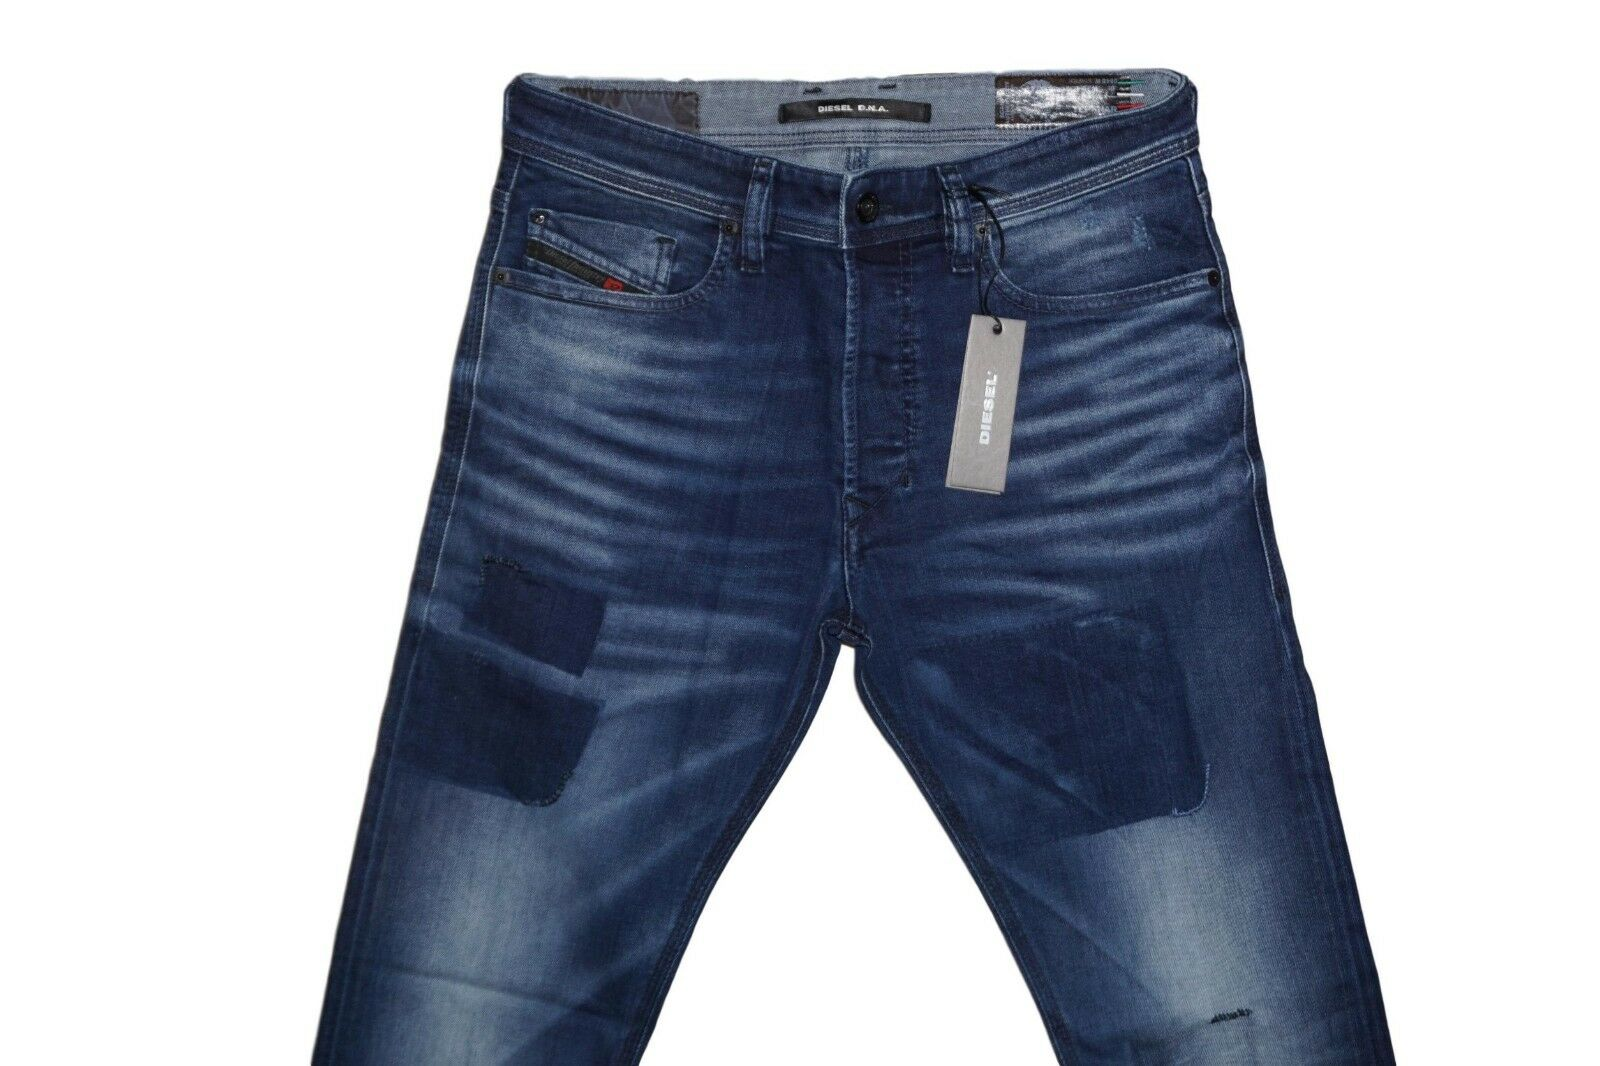 DIESEL TEPPHAR 084BW SLIM CARred JEANS W31 L32 100% AUTHENTIC